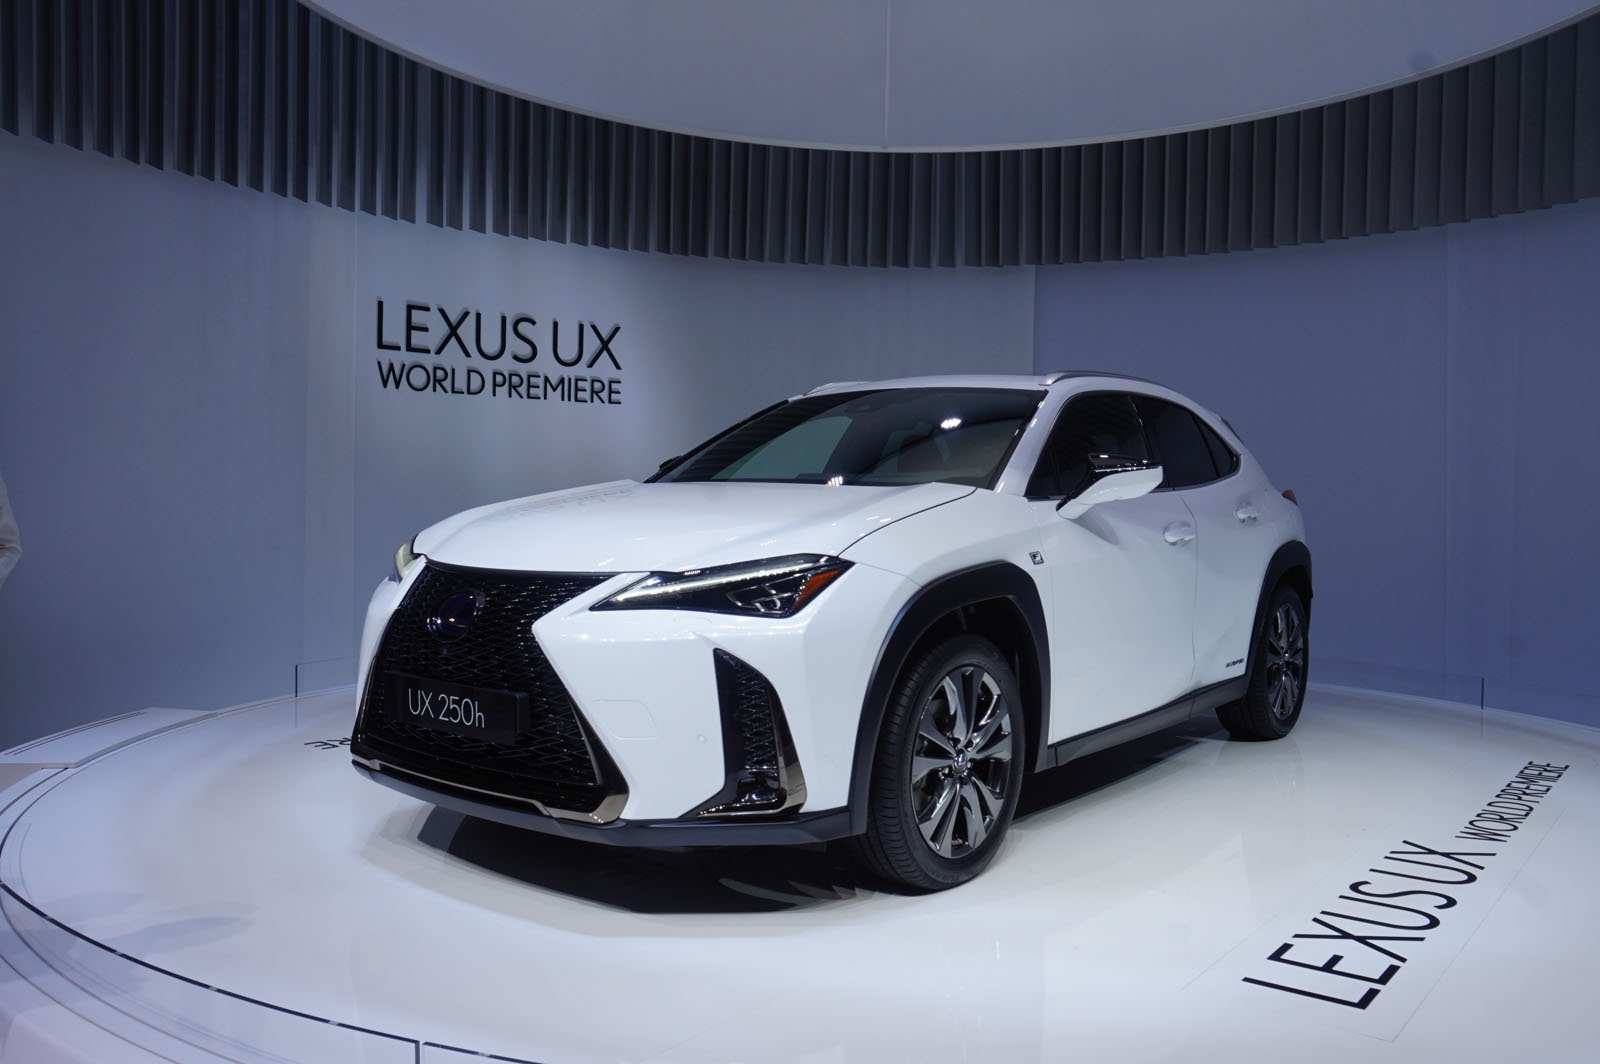 42 Concept of 2019 Lexus Ux Release Date Pricing by 2019 Lexus Ux Release Date